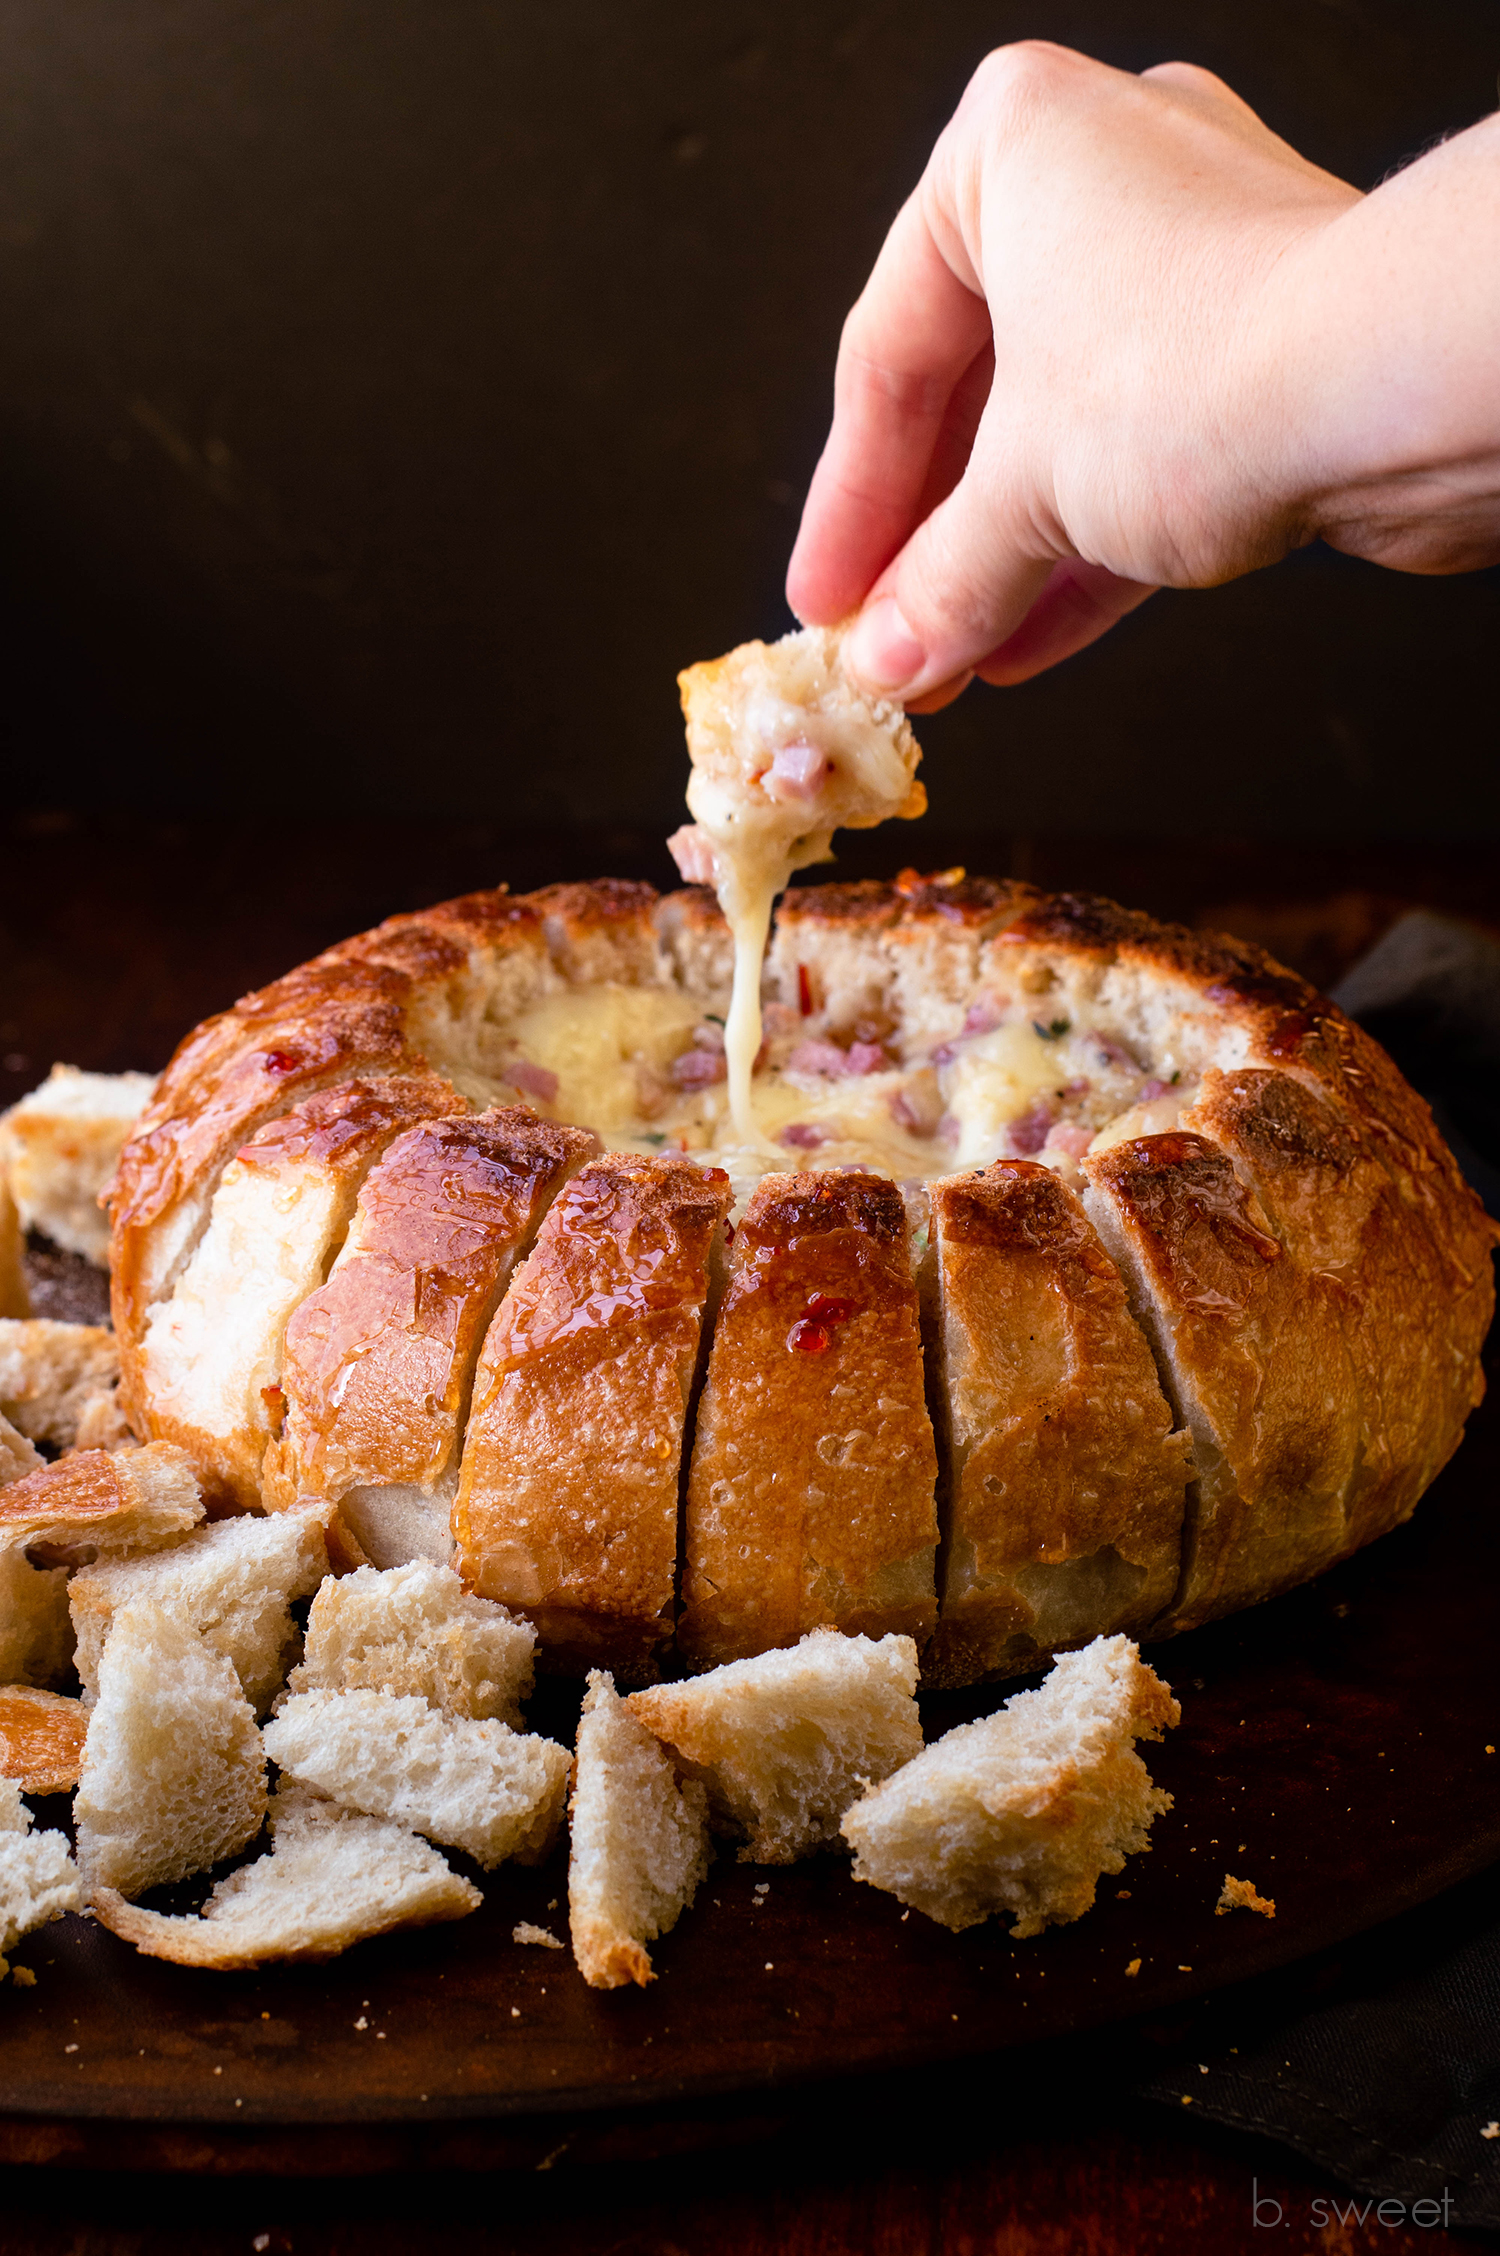 Garlic Prosciutto and Hot Honey Baked Brie Bread Bowl  - b. sweet